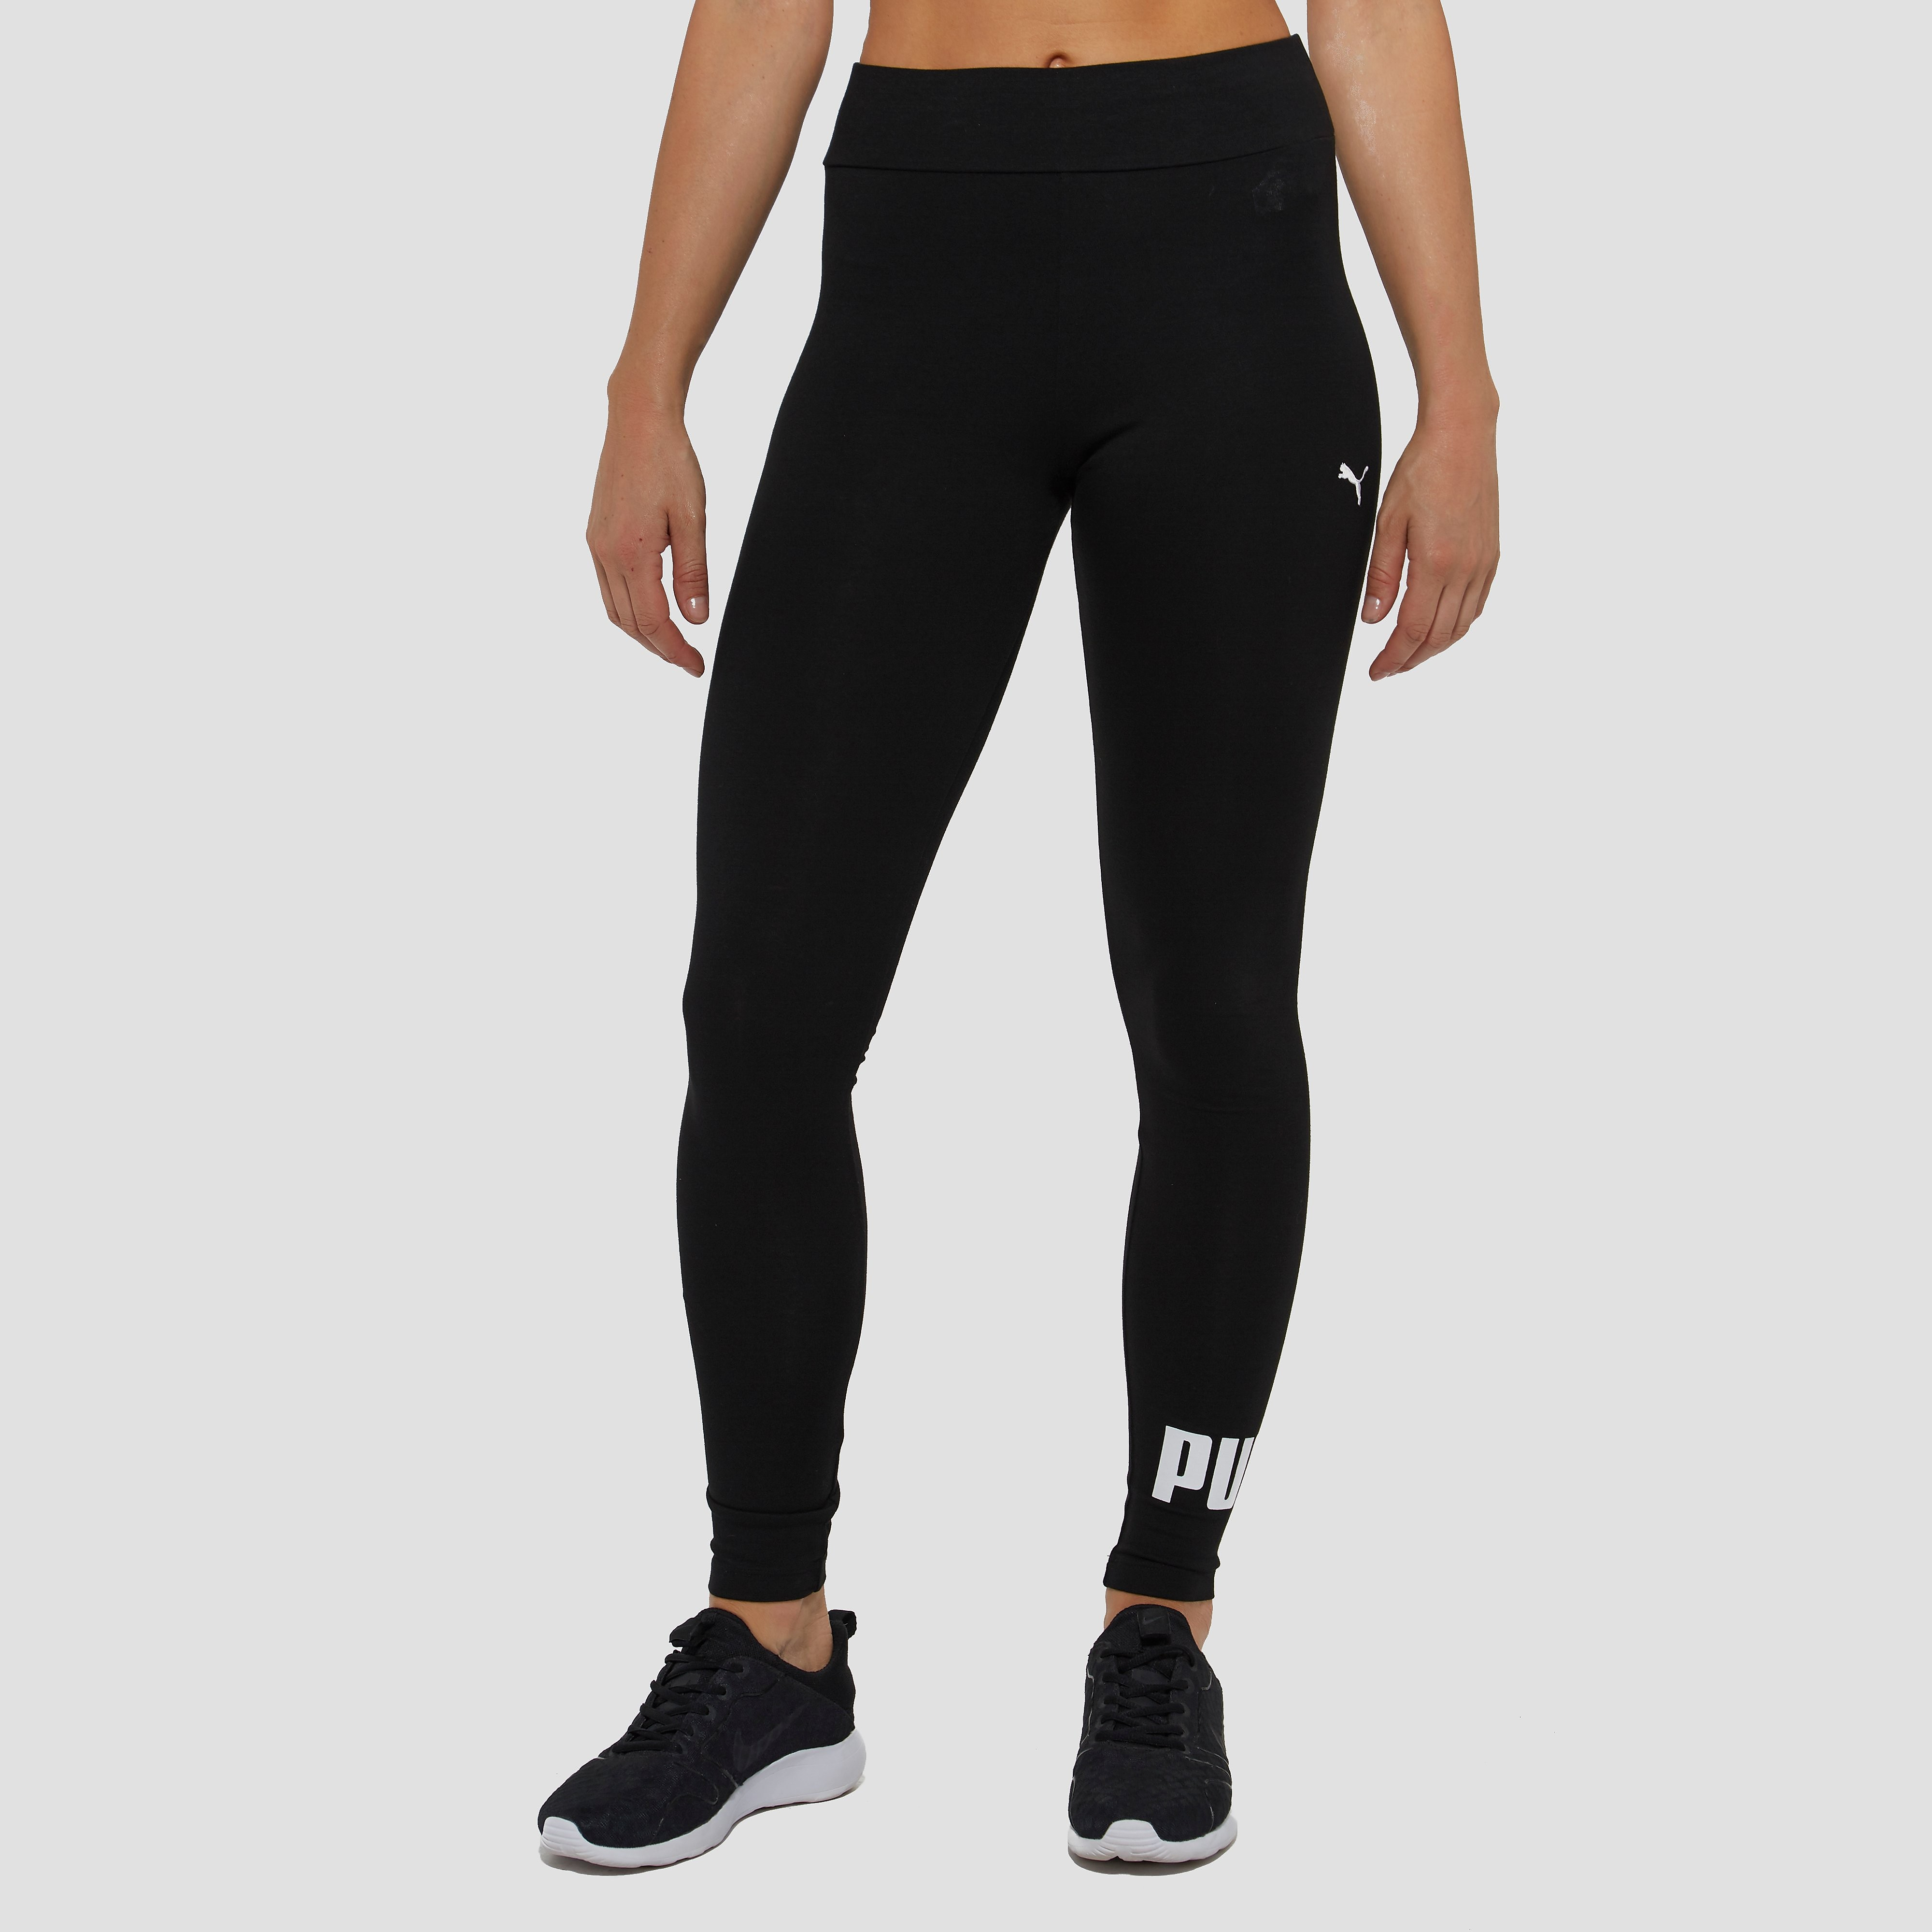 PUMA NO. 1 LOGO TIGHT ZWART DAMES